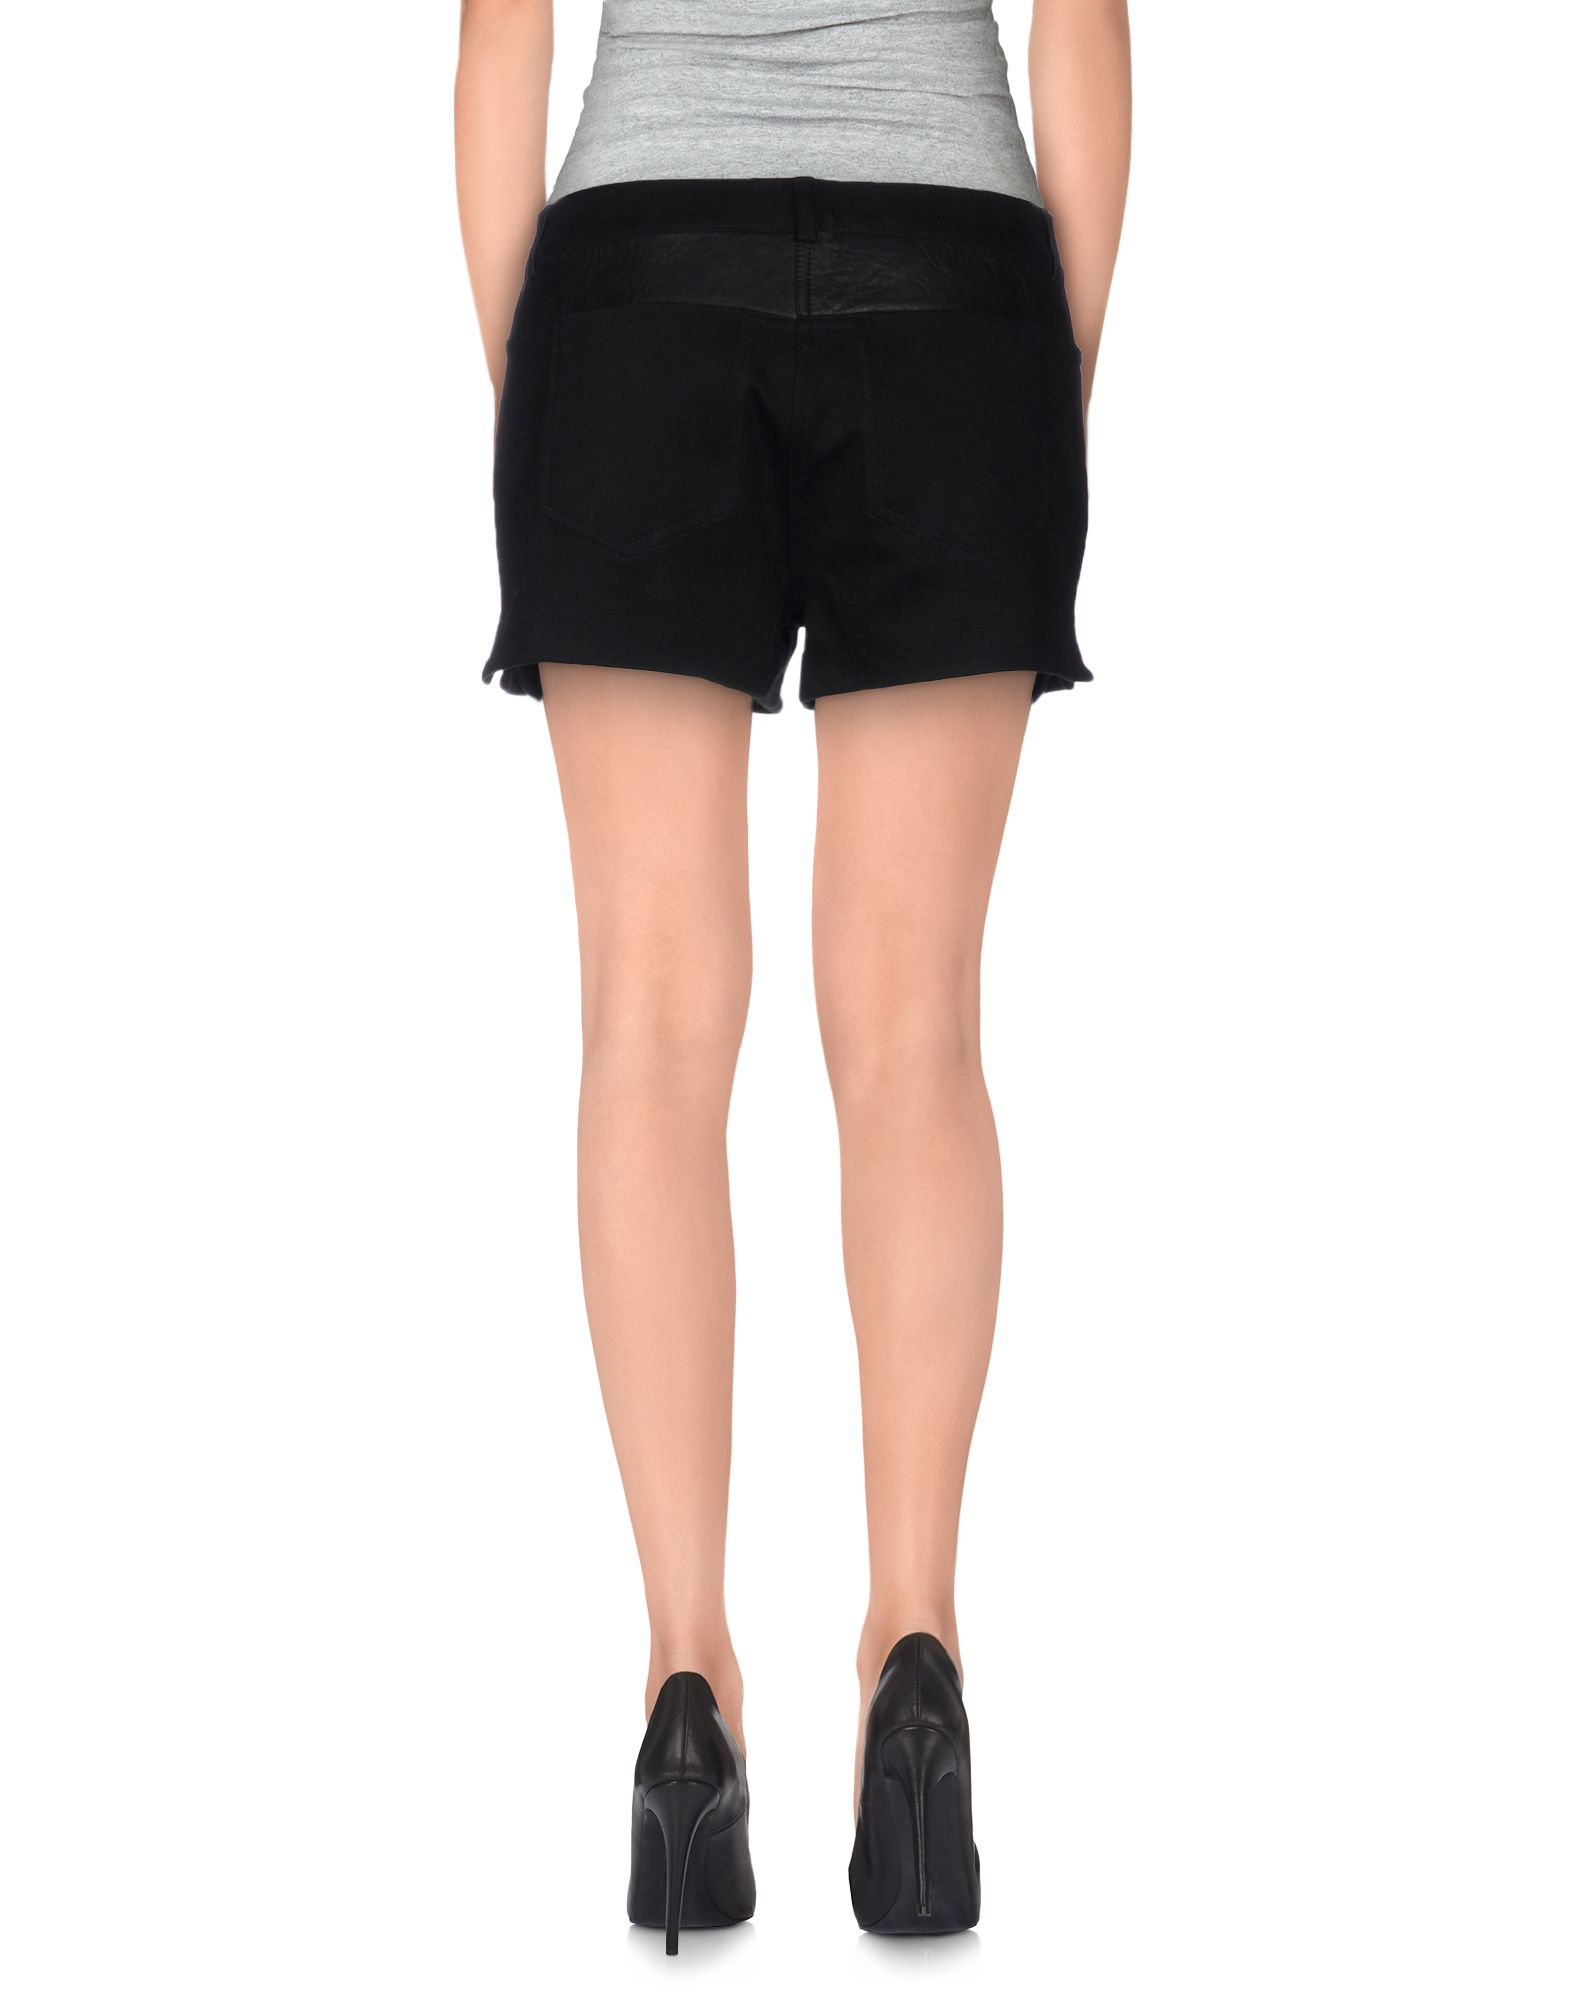 Warm up with hot deals this Summer! t by alexander wang shorts for $ Was $